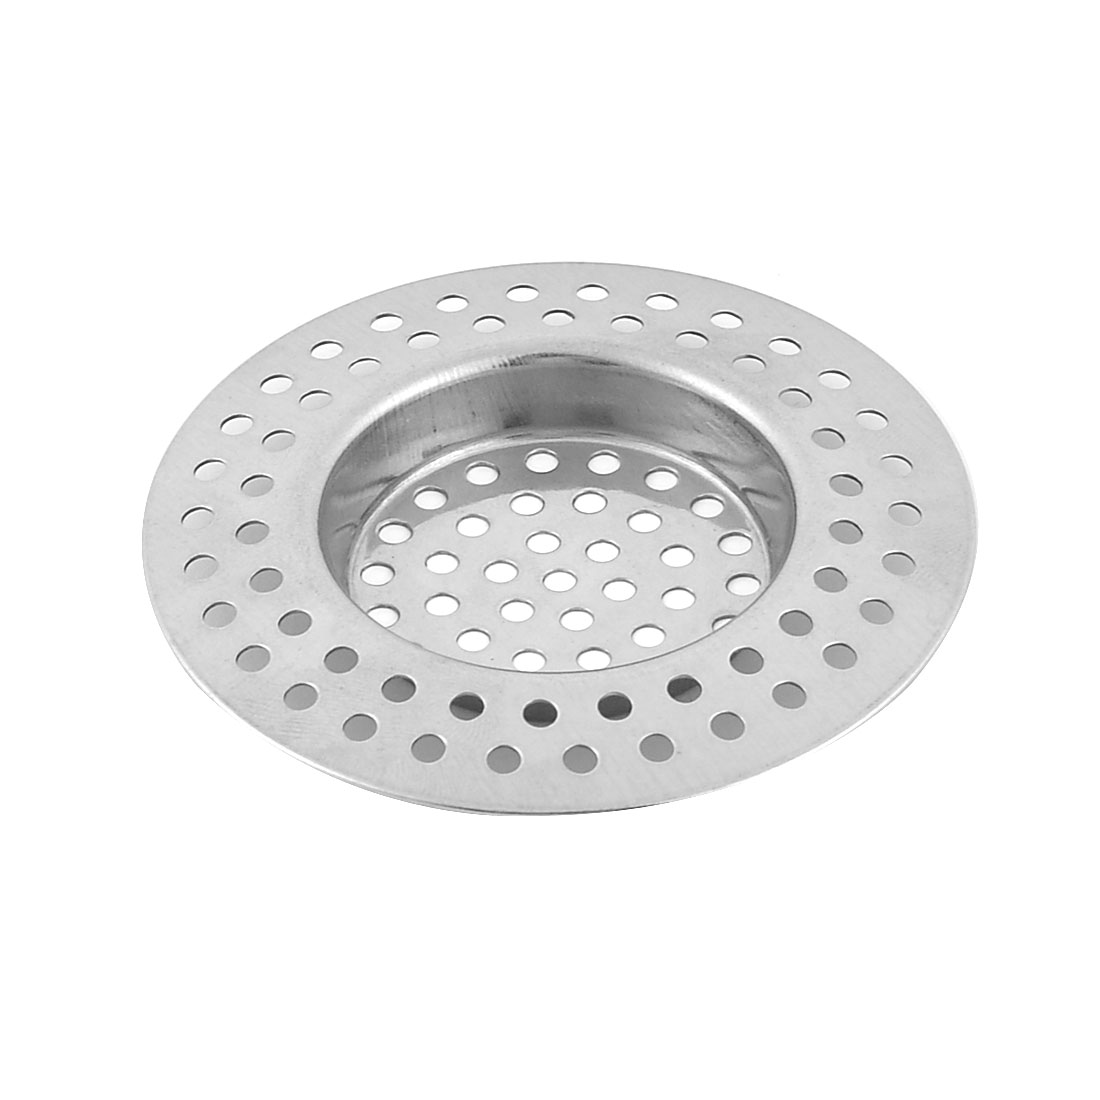 Home Kitchen Bathroom Metal Sink Drain Strainer Mesh Filter Basket Sliver Tone